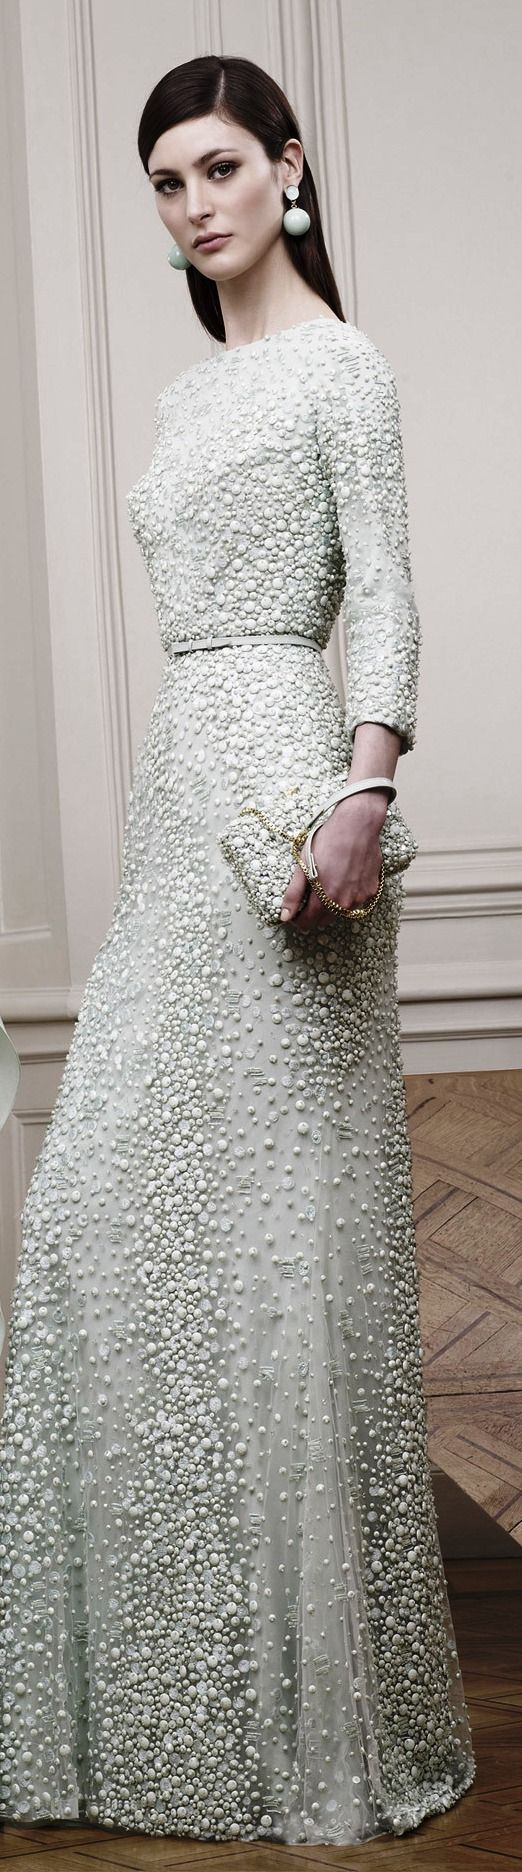 ELIE SAAB RESORT 2015 #HauteCouture | Gowns, gowns, & more gowns ...